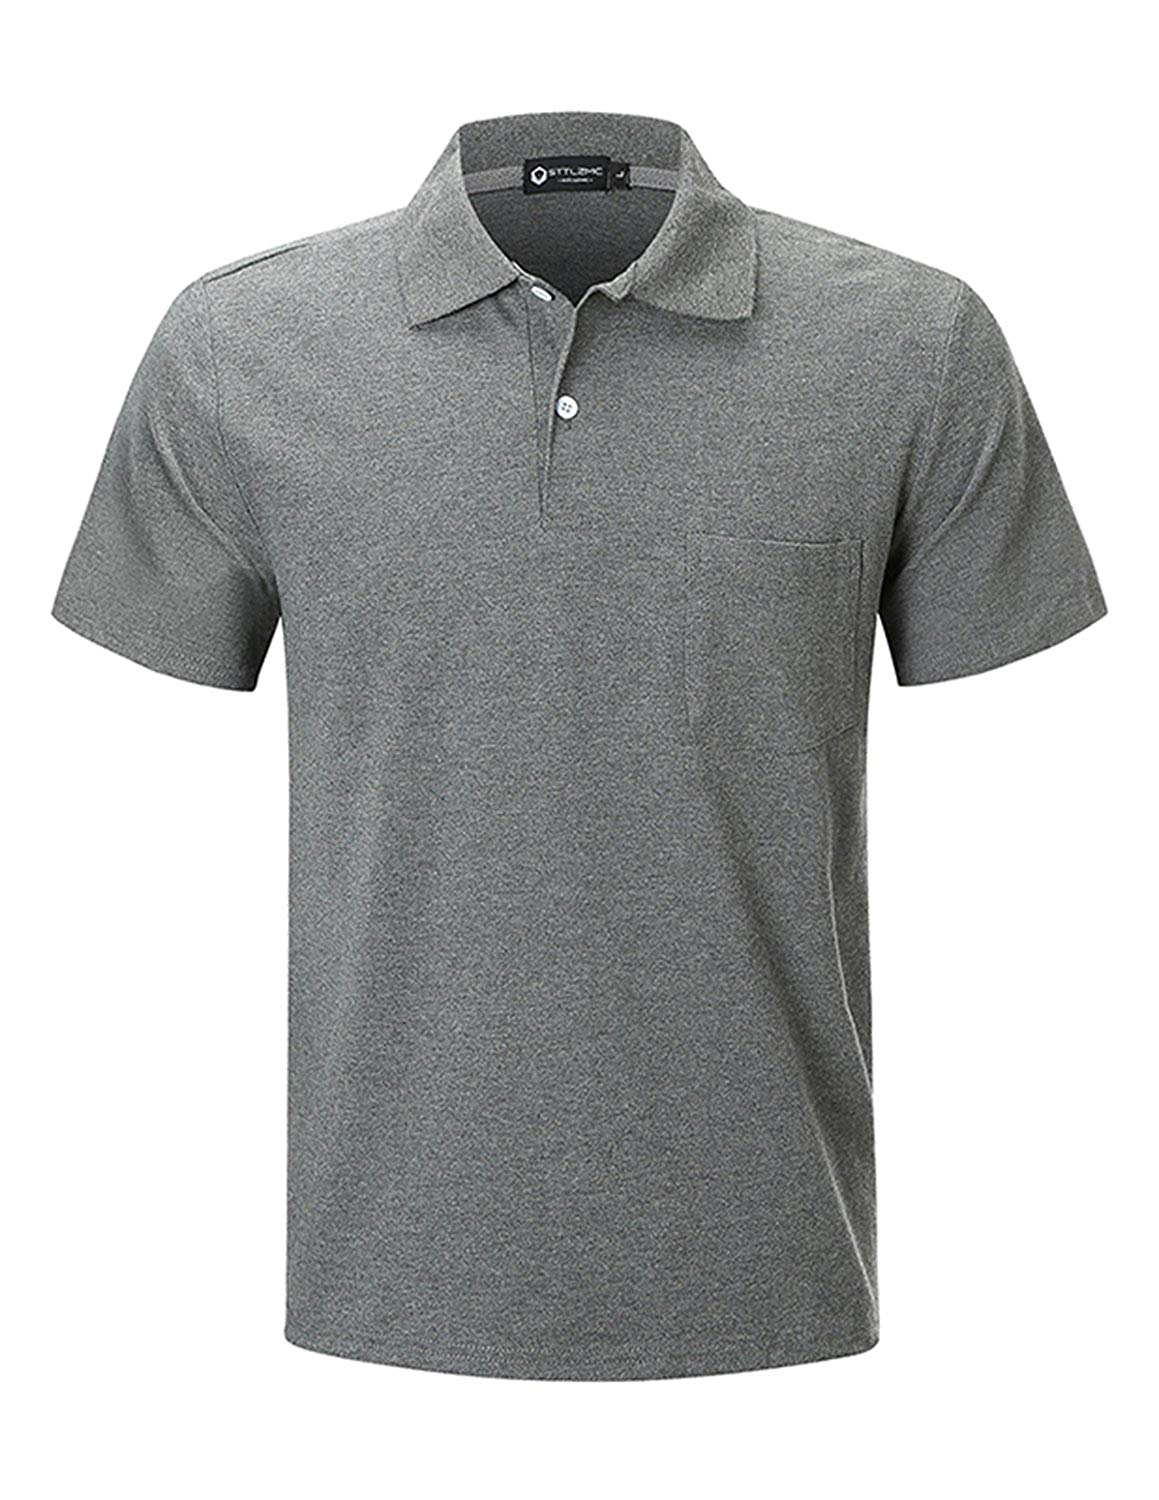 112e5958012 Get Quotations · STTLZMC Men s Short Sleeve Polo Shirts Custom Fit Golf  Original Tops with Pocket